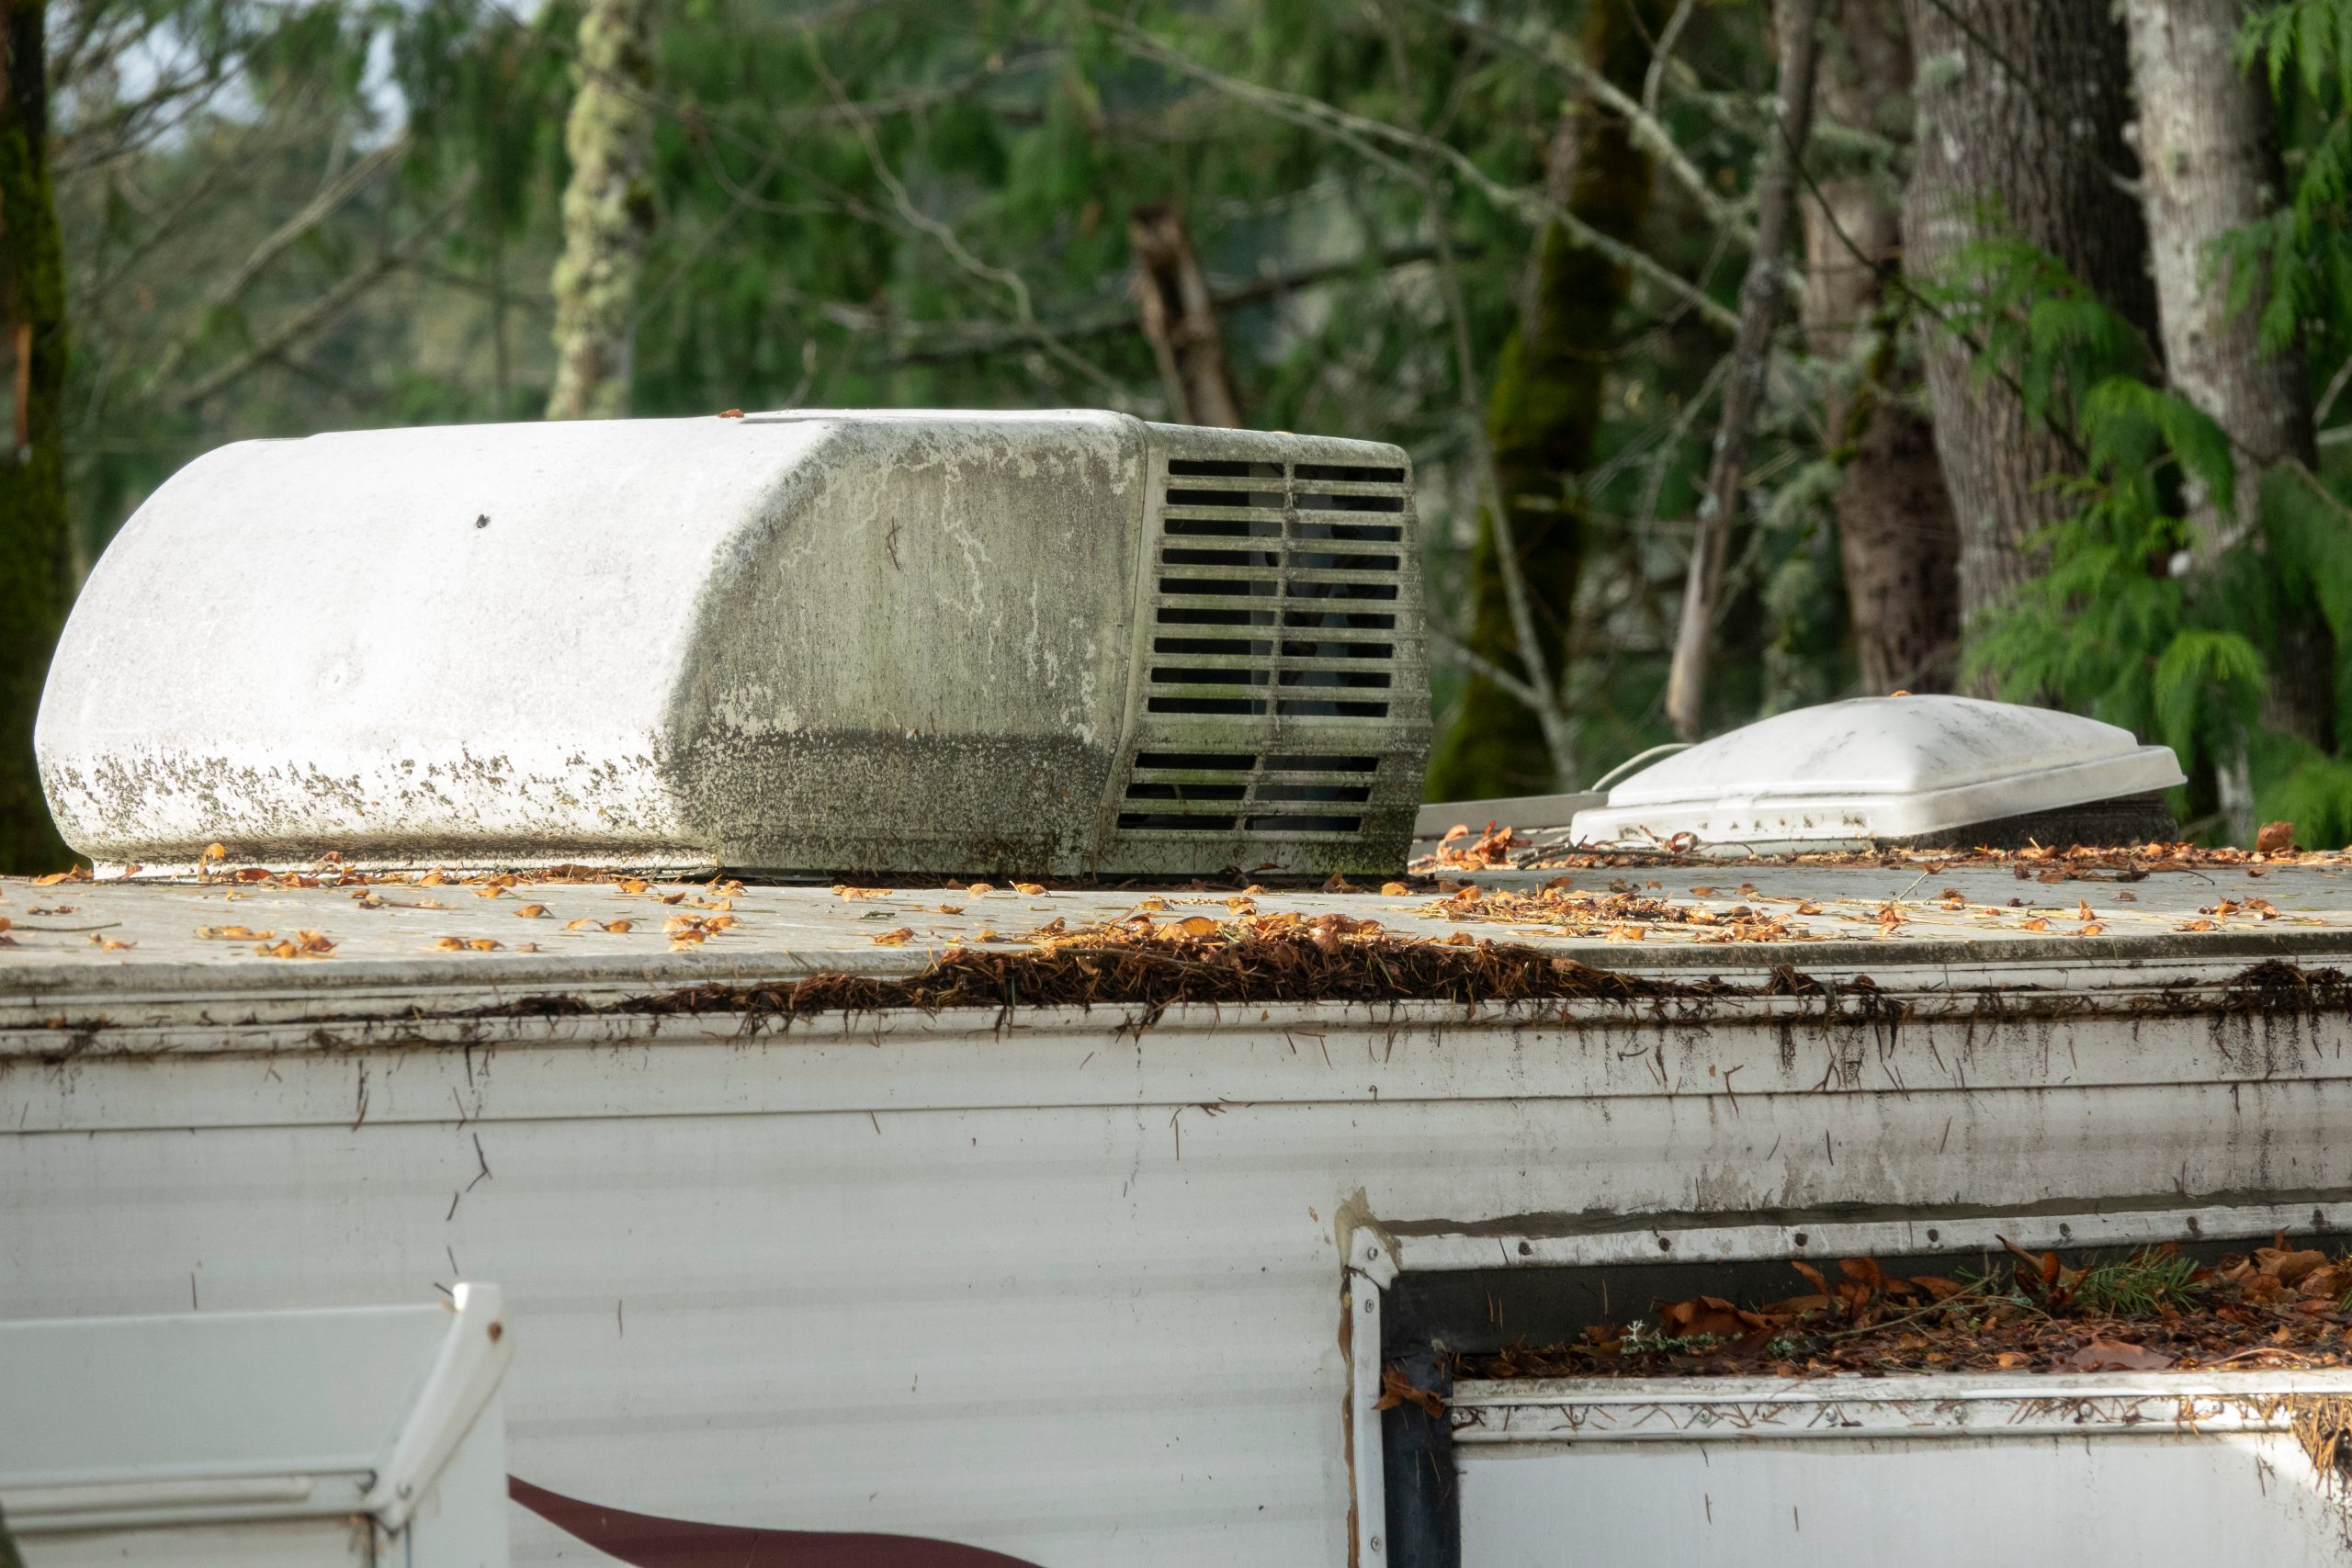 Very dirty RV roof and A/C unit